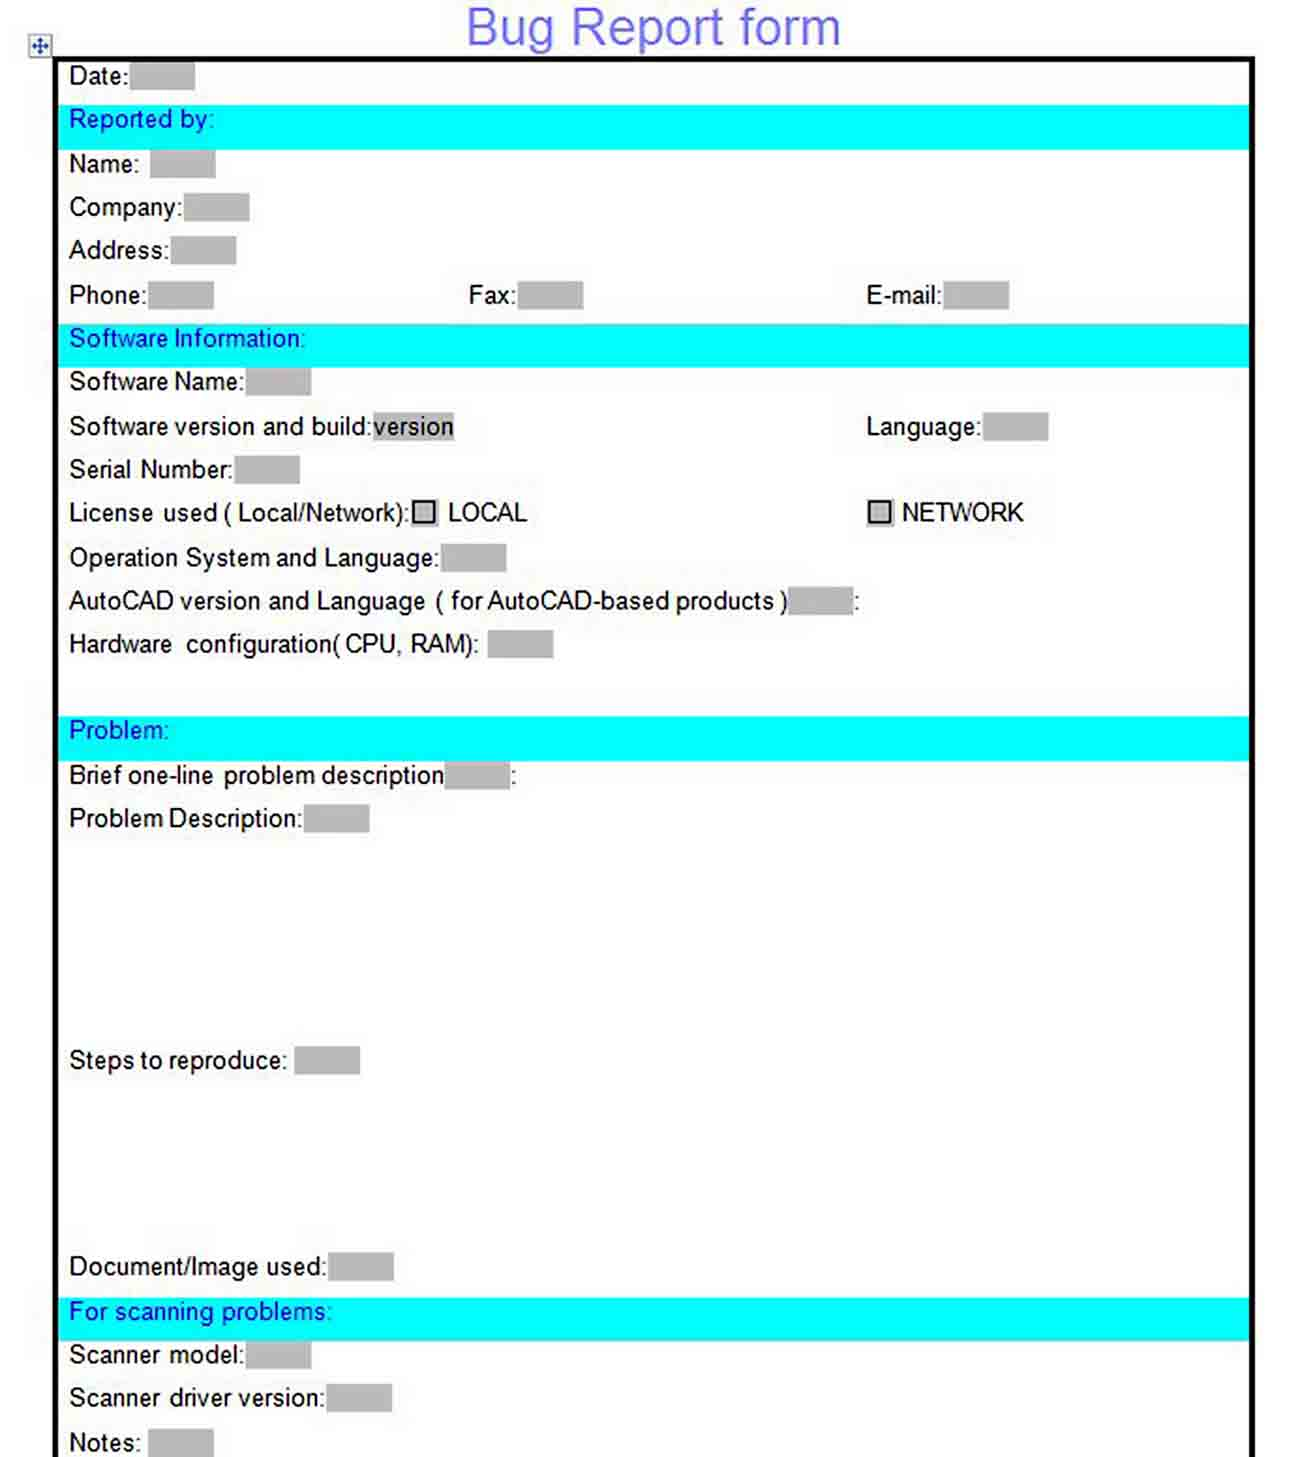 Bug Report Form Template sample